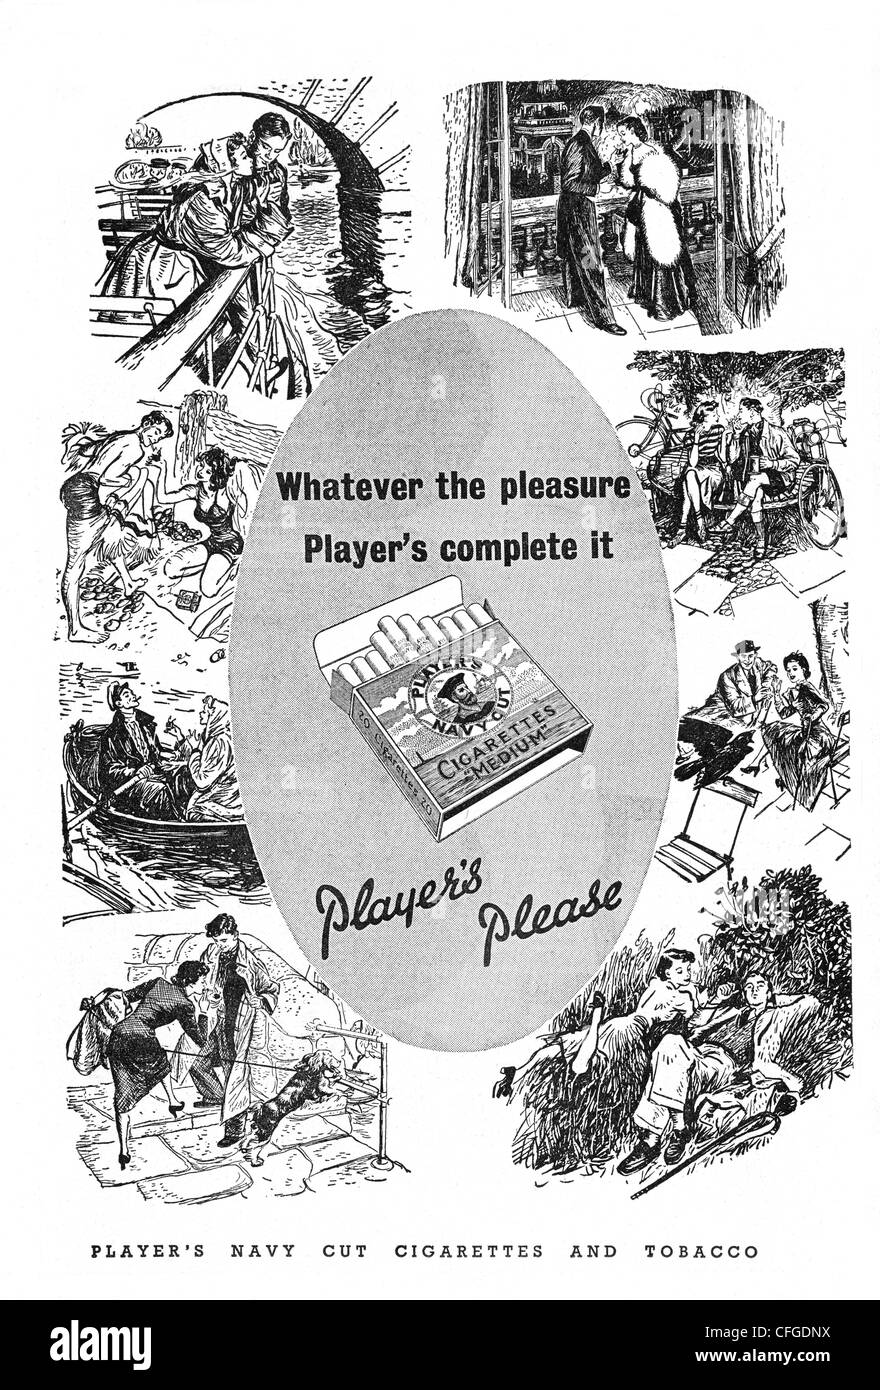 Players Navy Cut cigarettes advert from 1951 - Stock Image